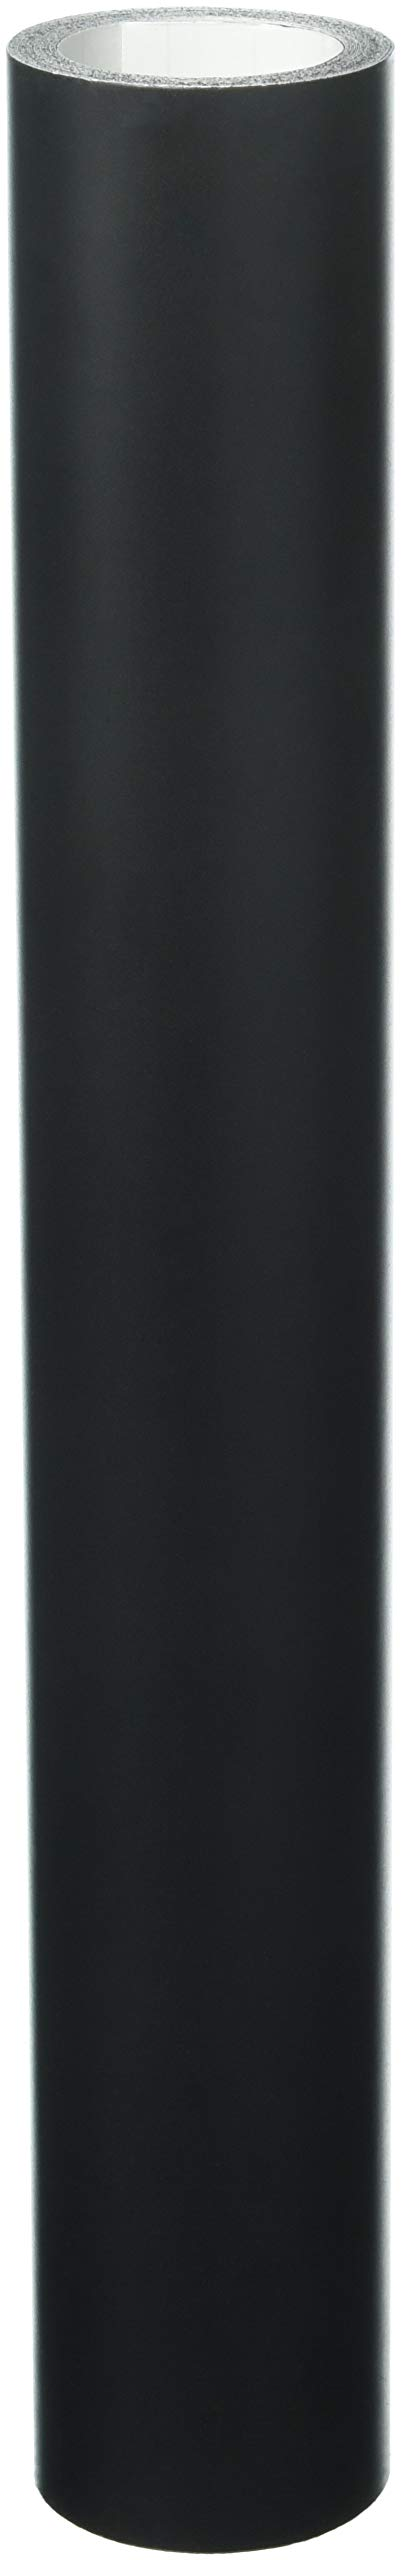 """Roll of Oracal 651 Matte Black Vinyl for Craft Cutters and Vinyl Sign Cutters (12""""x10FT)"""